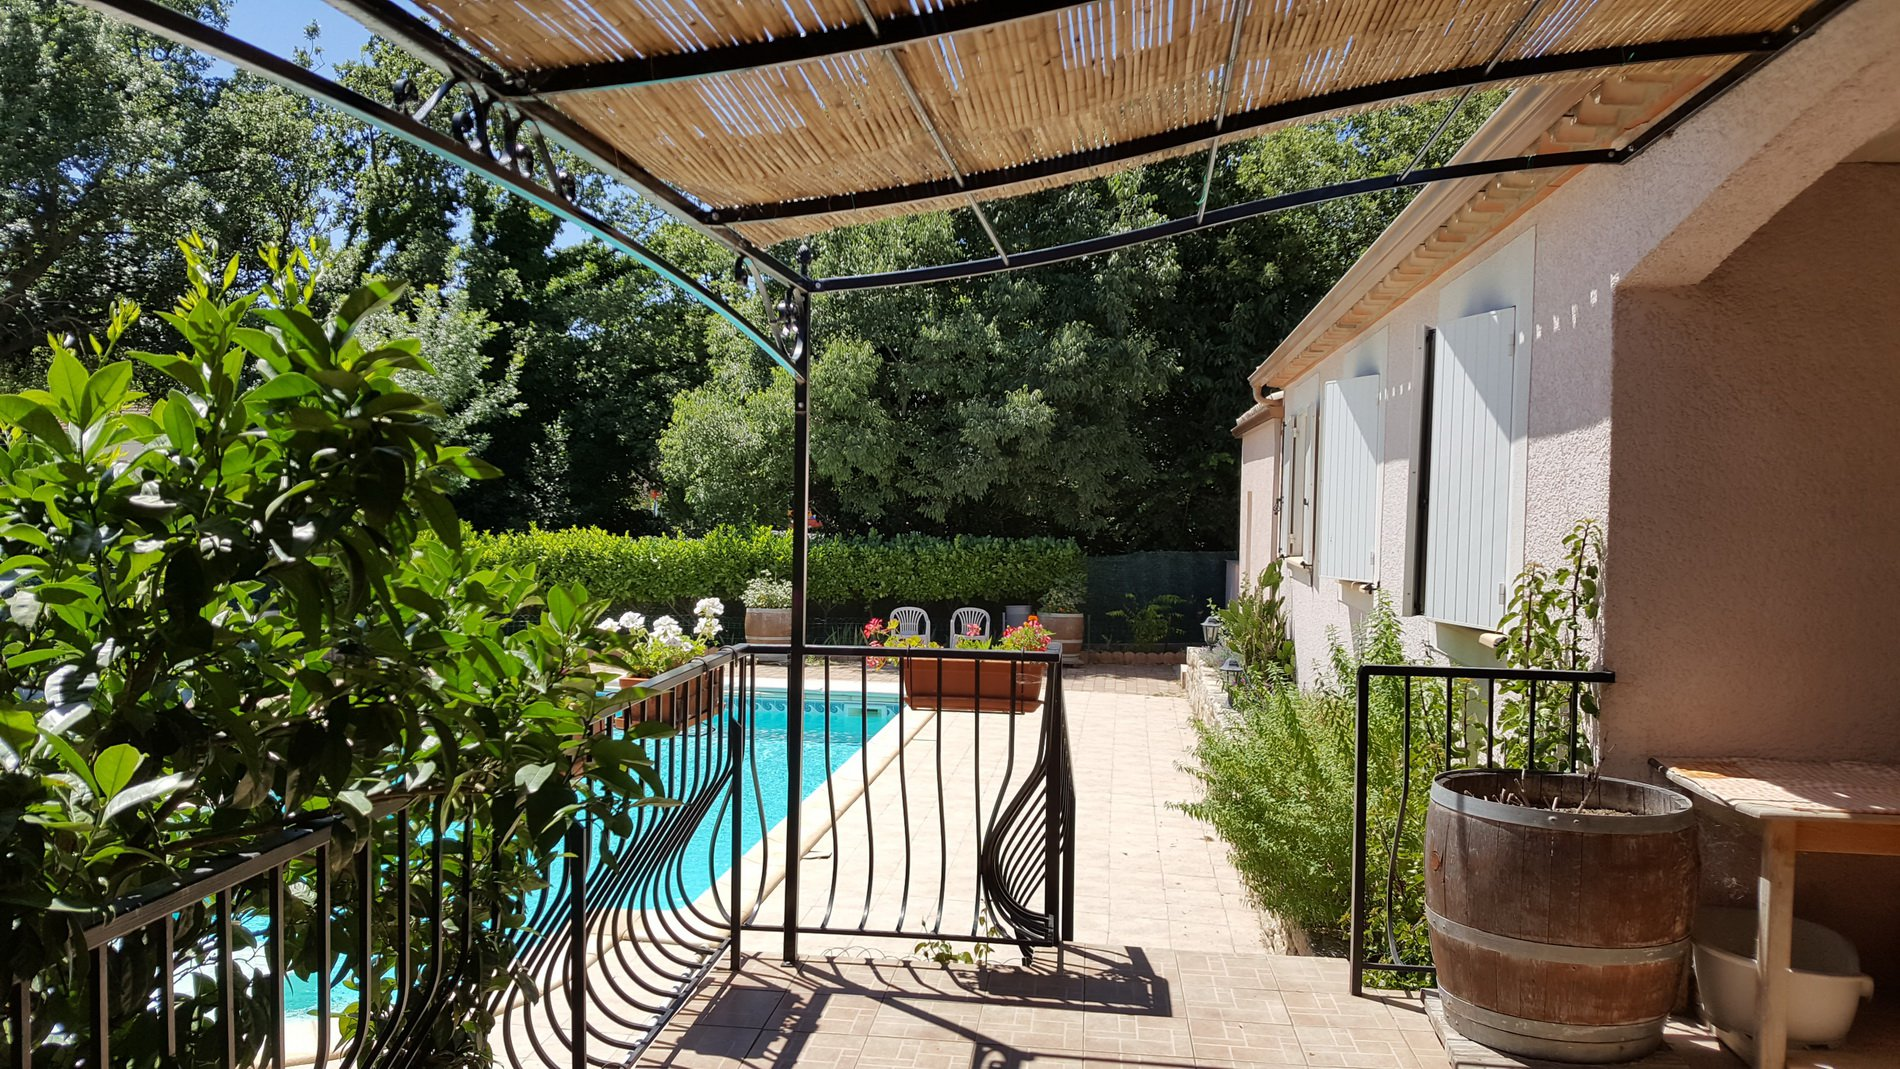 Villa with garage, garden and swimming pool